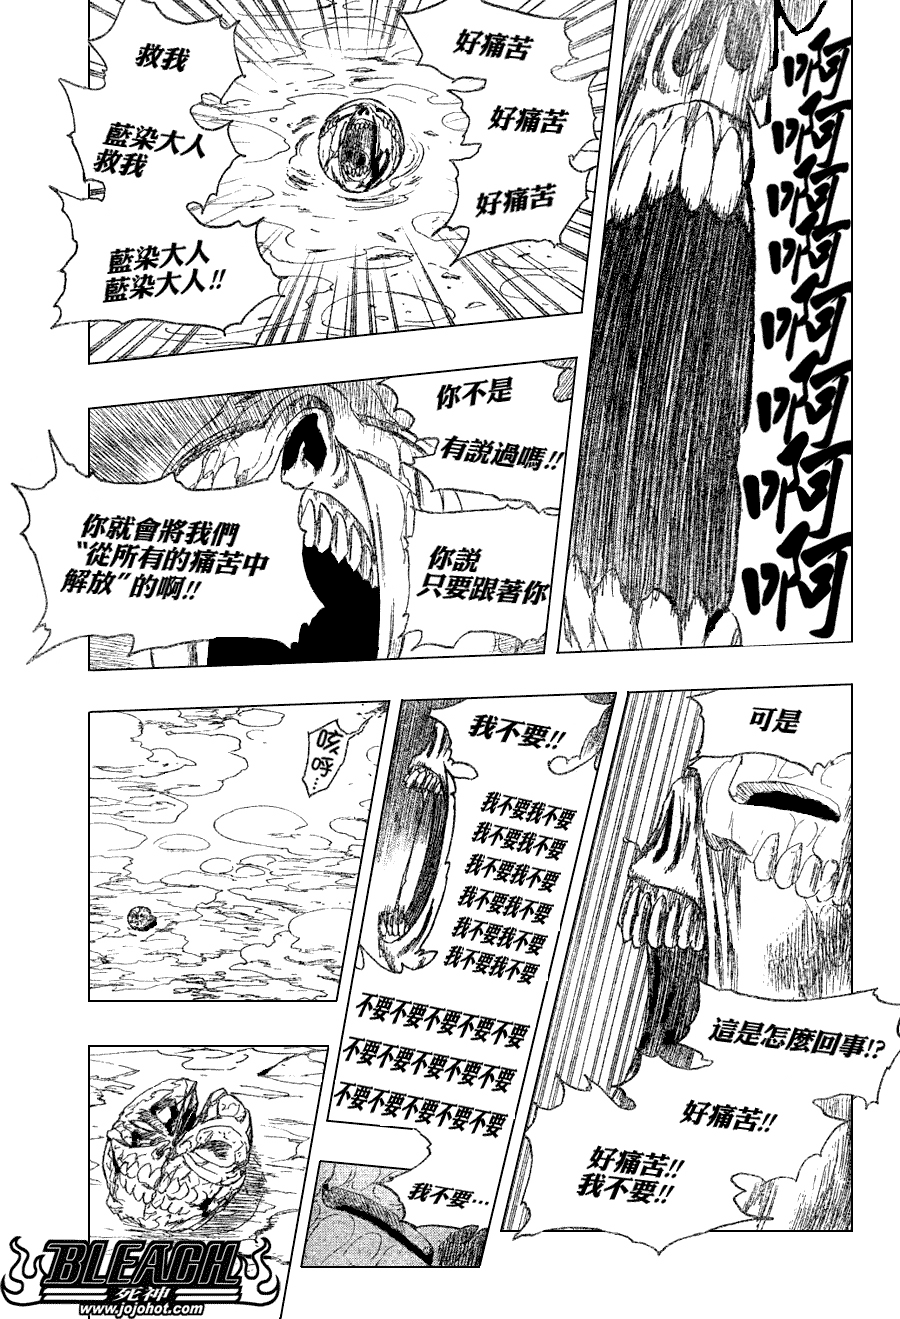 inthenearterm_死神漫画269:the end is near (3/20)